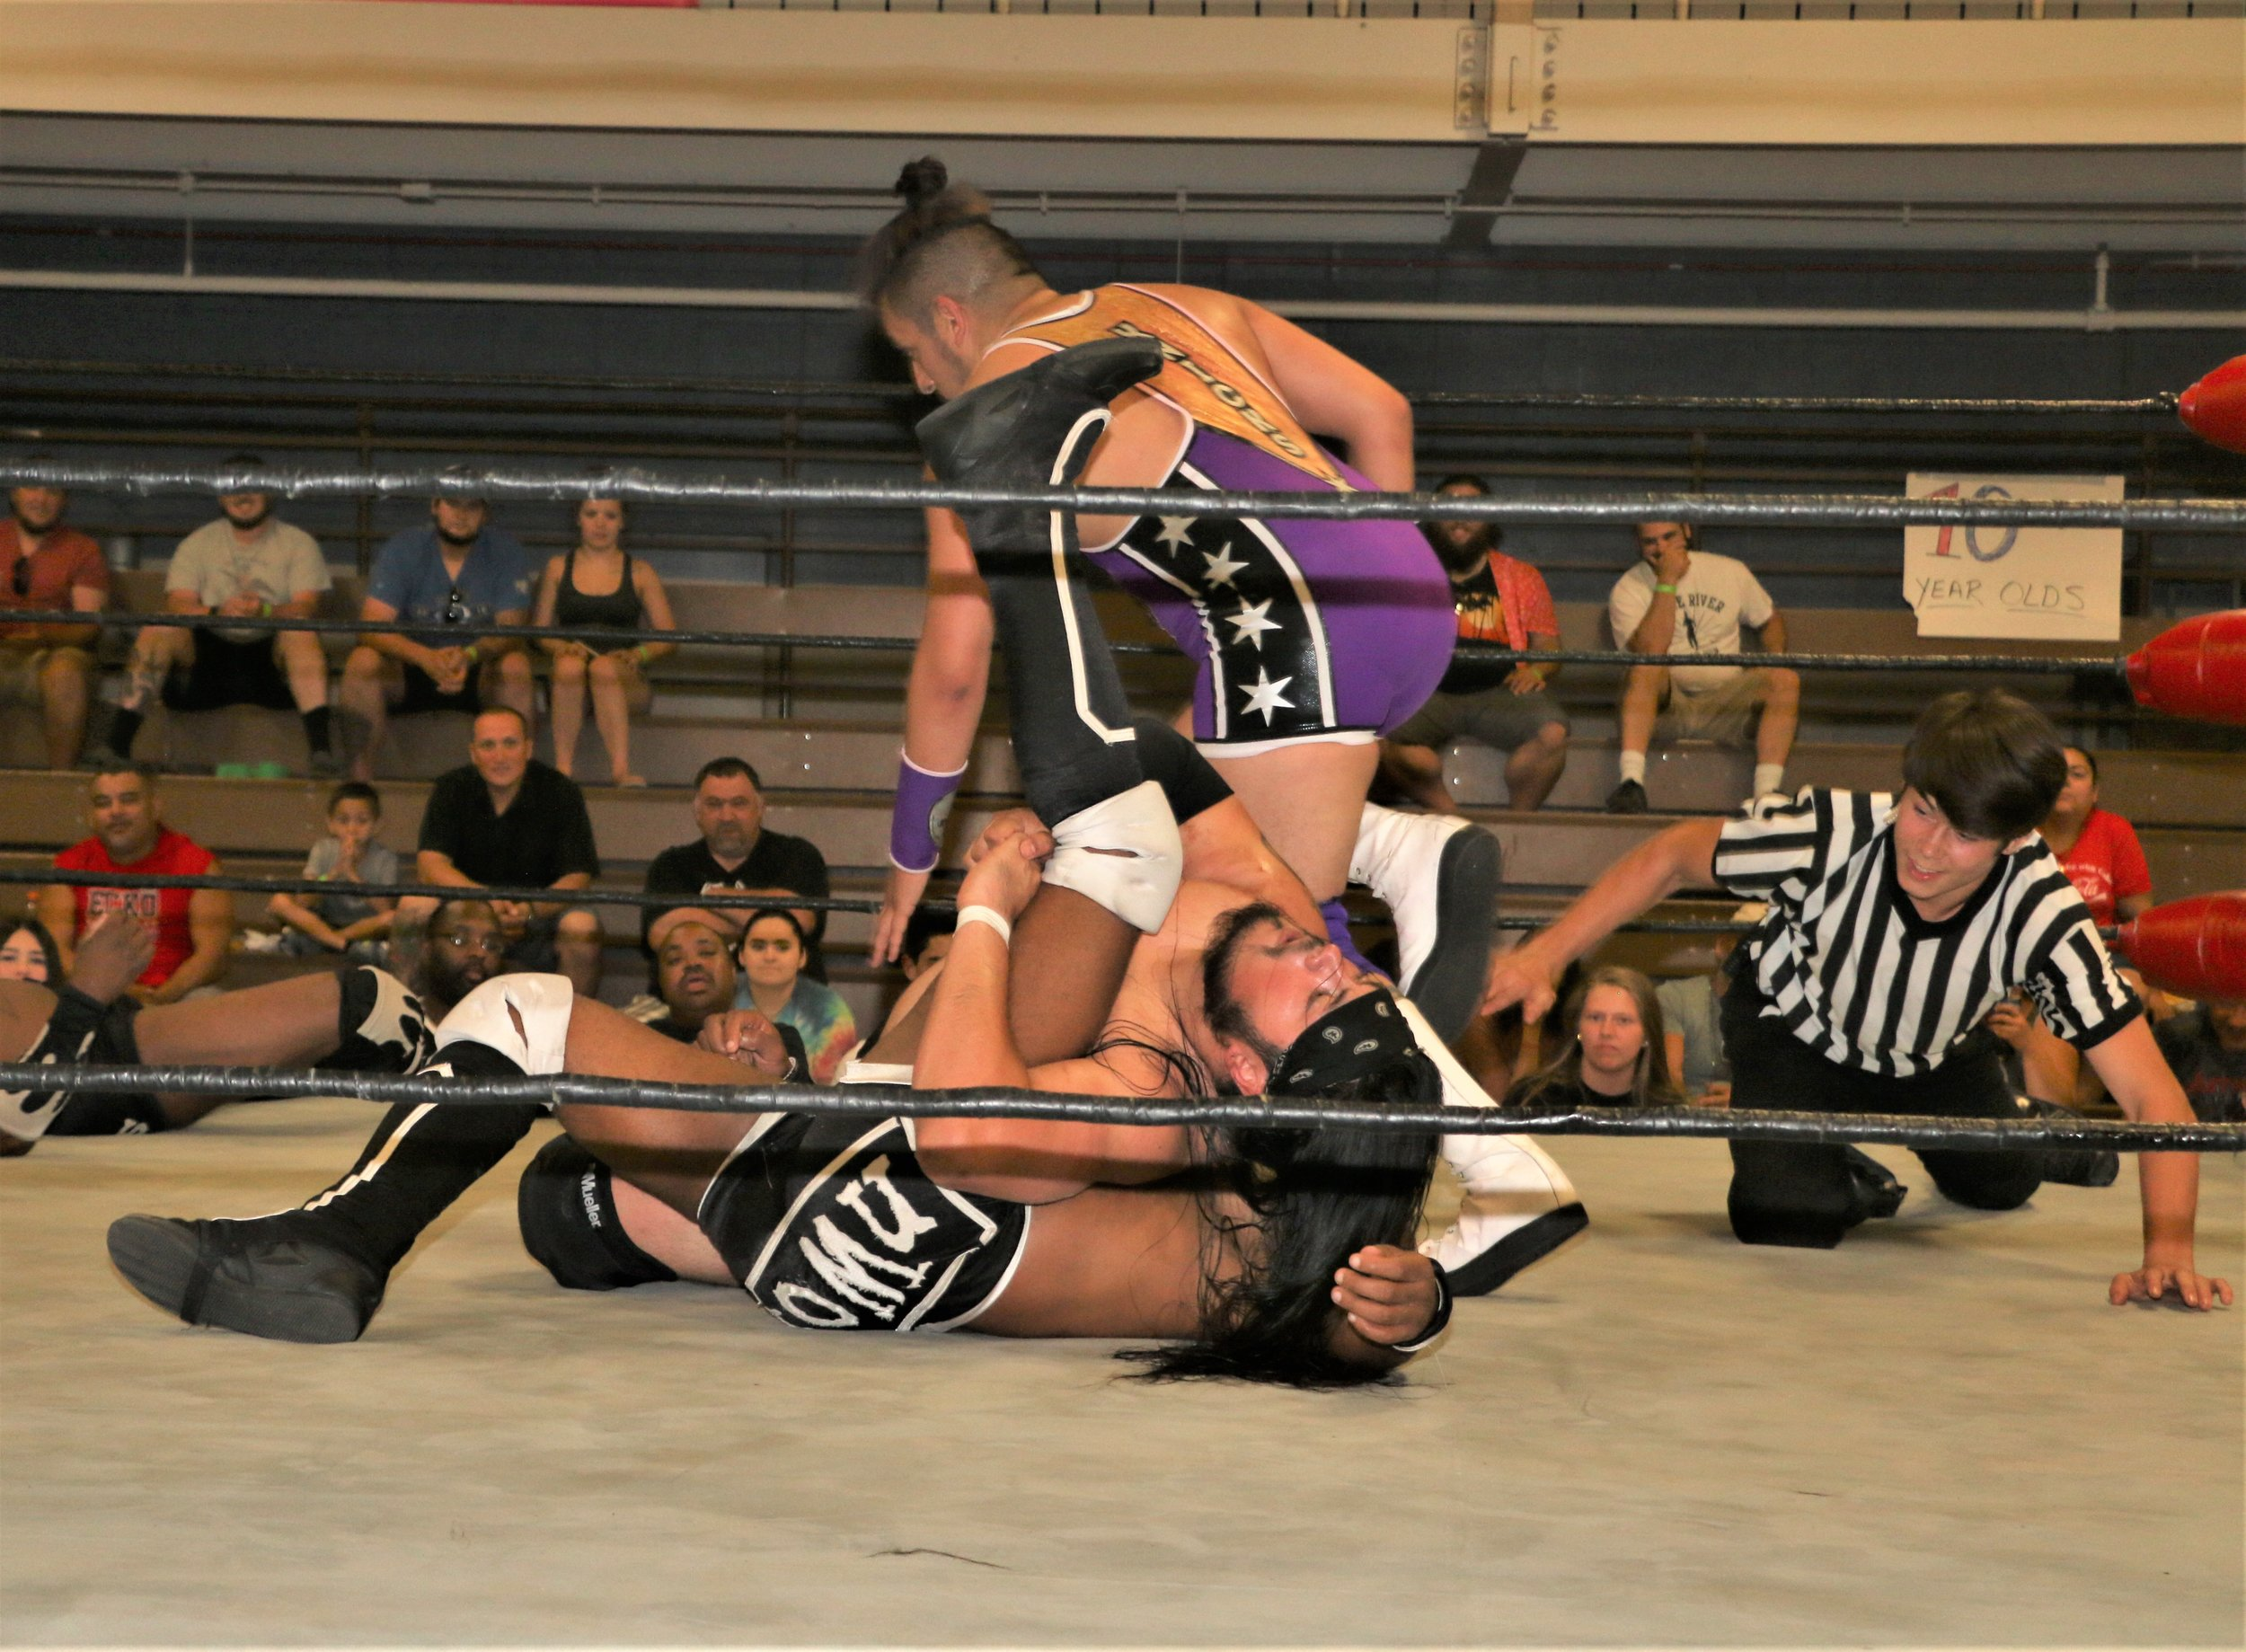 Chris Castro records the pinfall for the victory in the tag-team match.